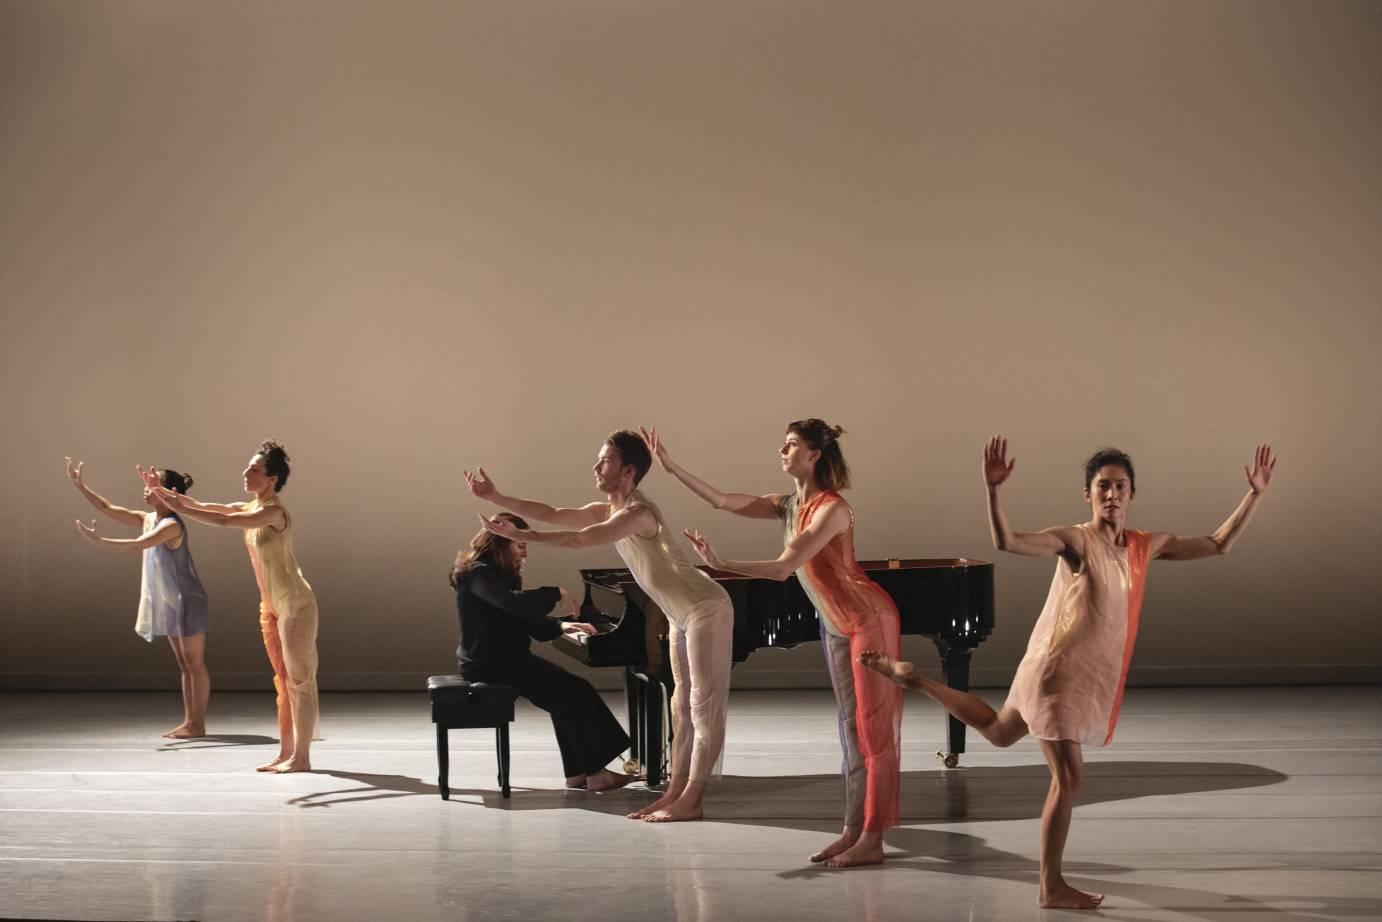 Dancers with curved arms gather around Simone Dinnerstein playing the piano